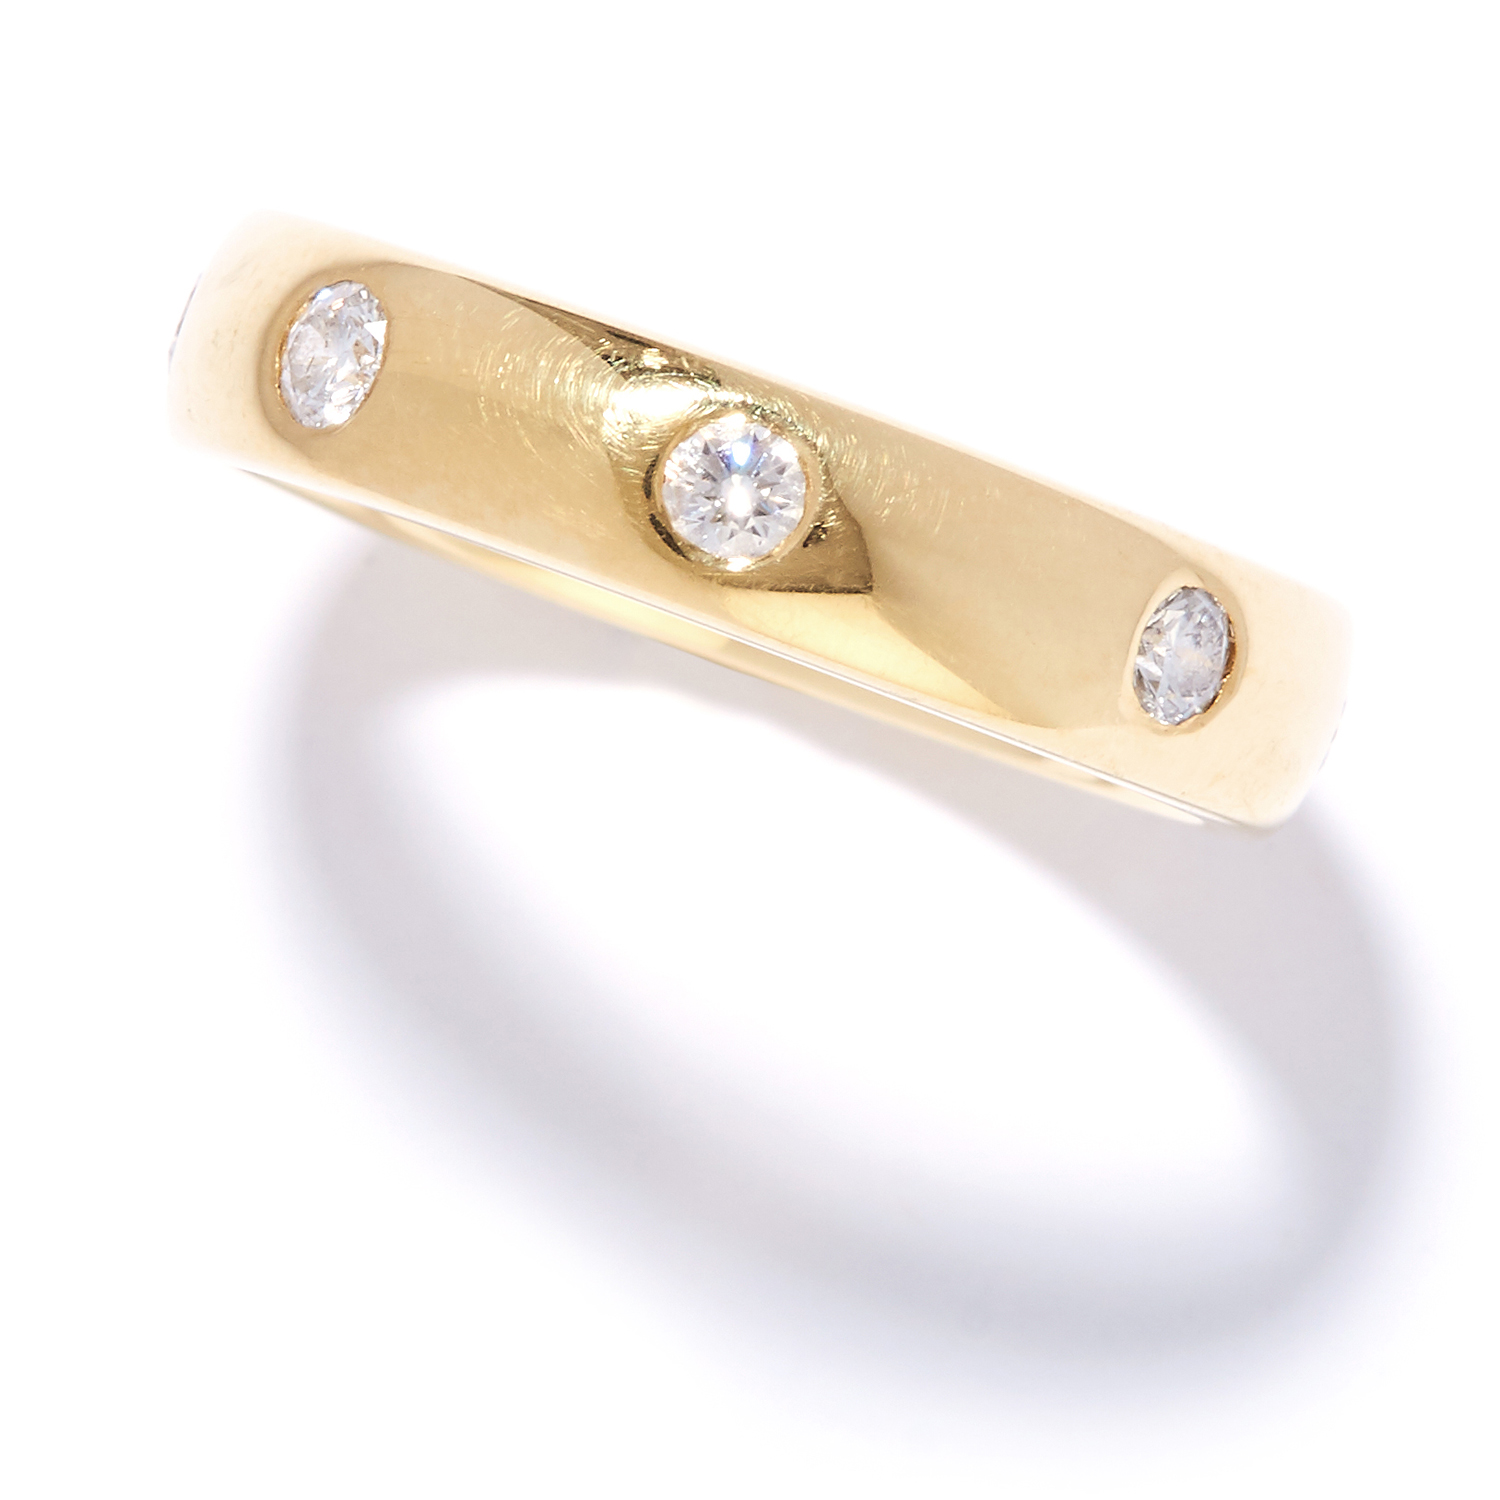 Los 51 - DIAMOND ETERNITY BAND RING in 18ct yellow gold, set with eight round cut diamonds, British